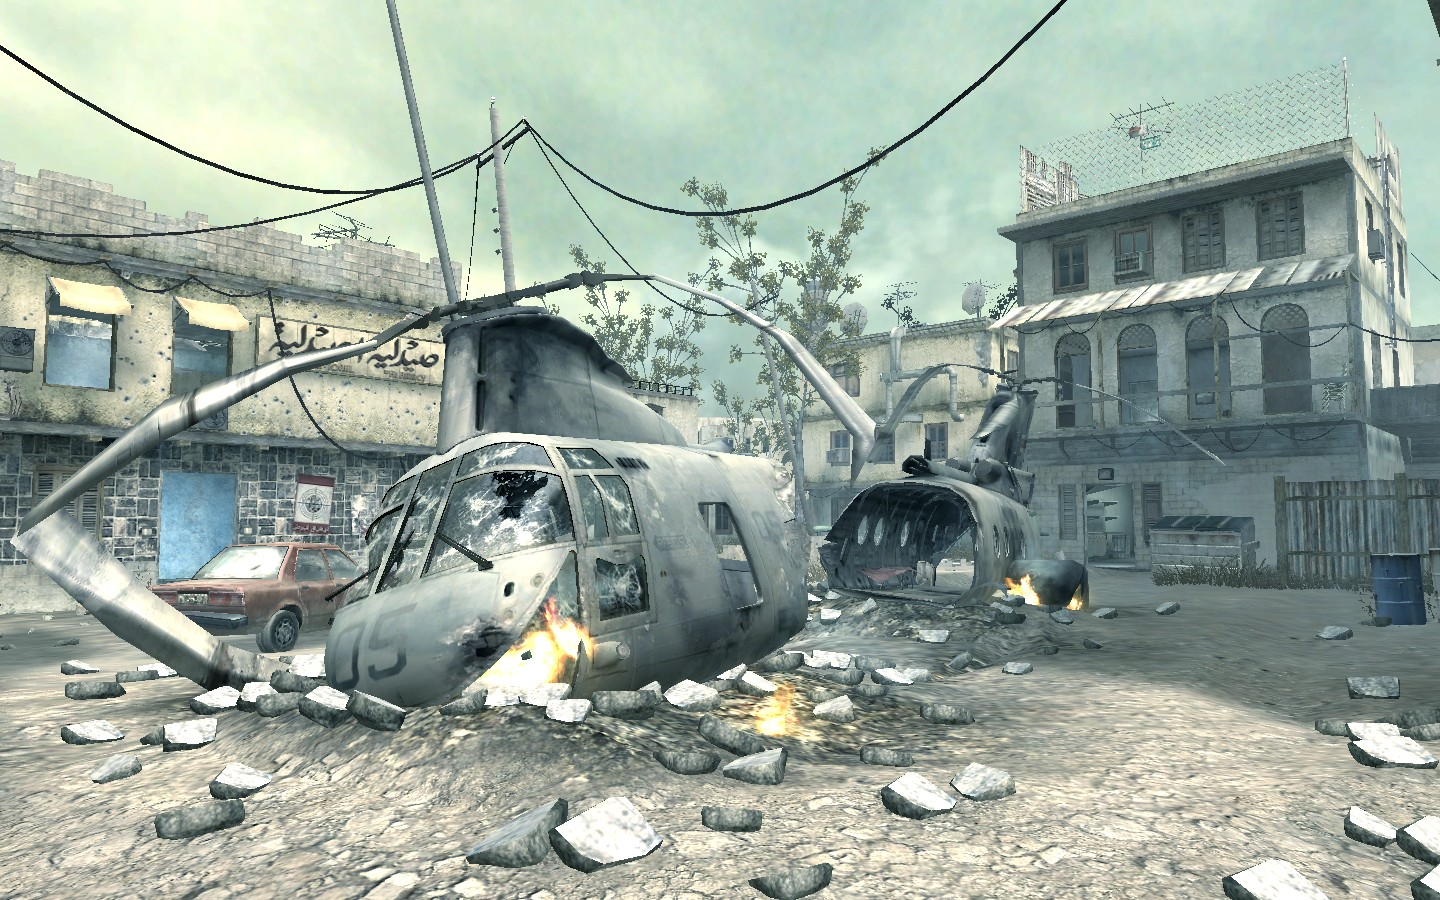 An image of the multiplayer map Crash from Call of Duty 4: Modern Warfare.